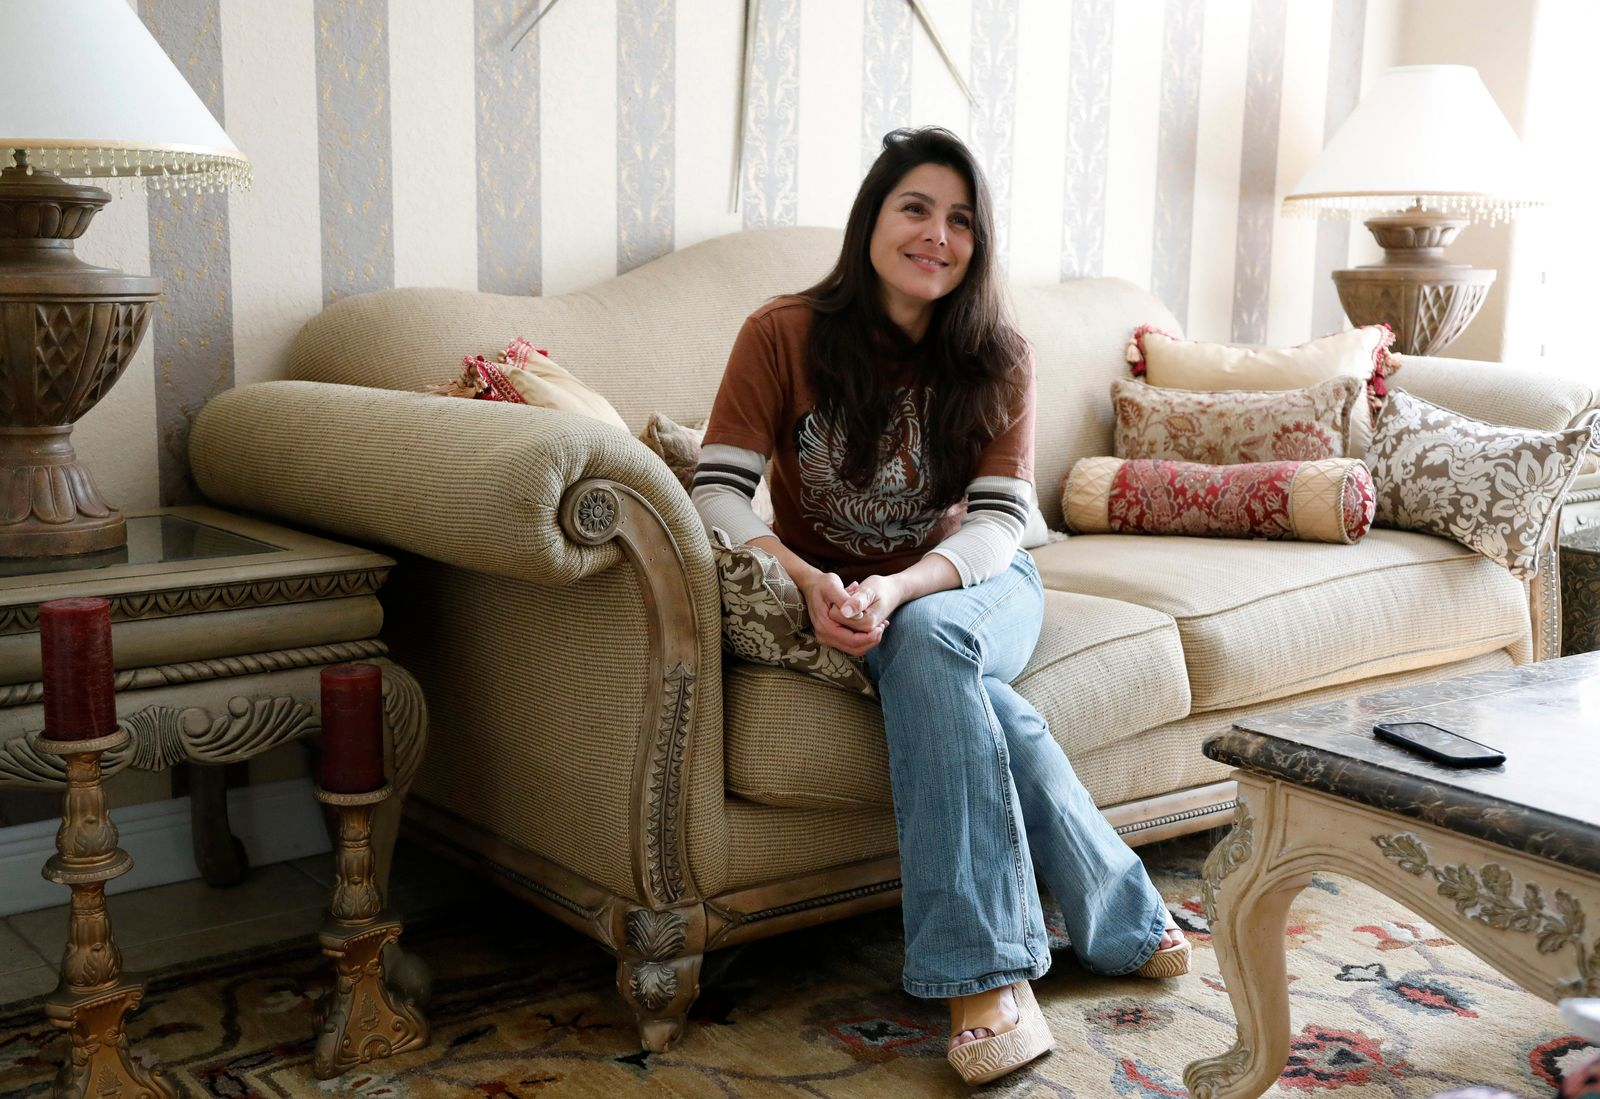 Judith Negron is interviewed at her home in Hialeah, Fla., Wednesday, Feb. 19, 2020. Negron was serving 35 years at a Florida prison for health care fraud, conspiracy and money laundering when she was released Tuesday after President Donald Trump commuted her sentence. (AP Photo/Terry Renna)